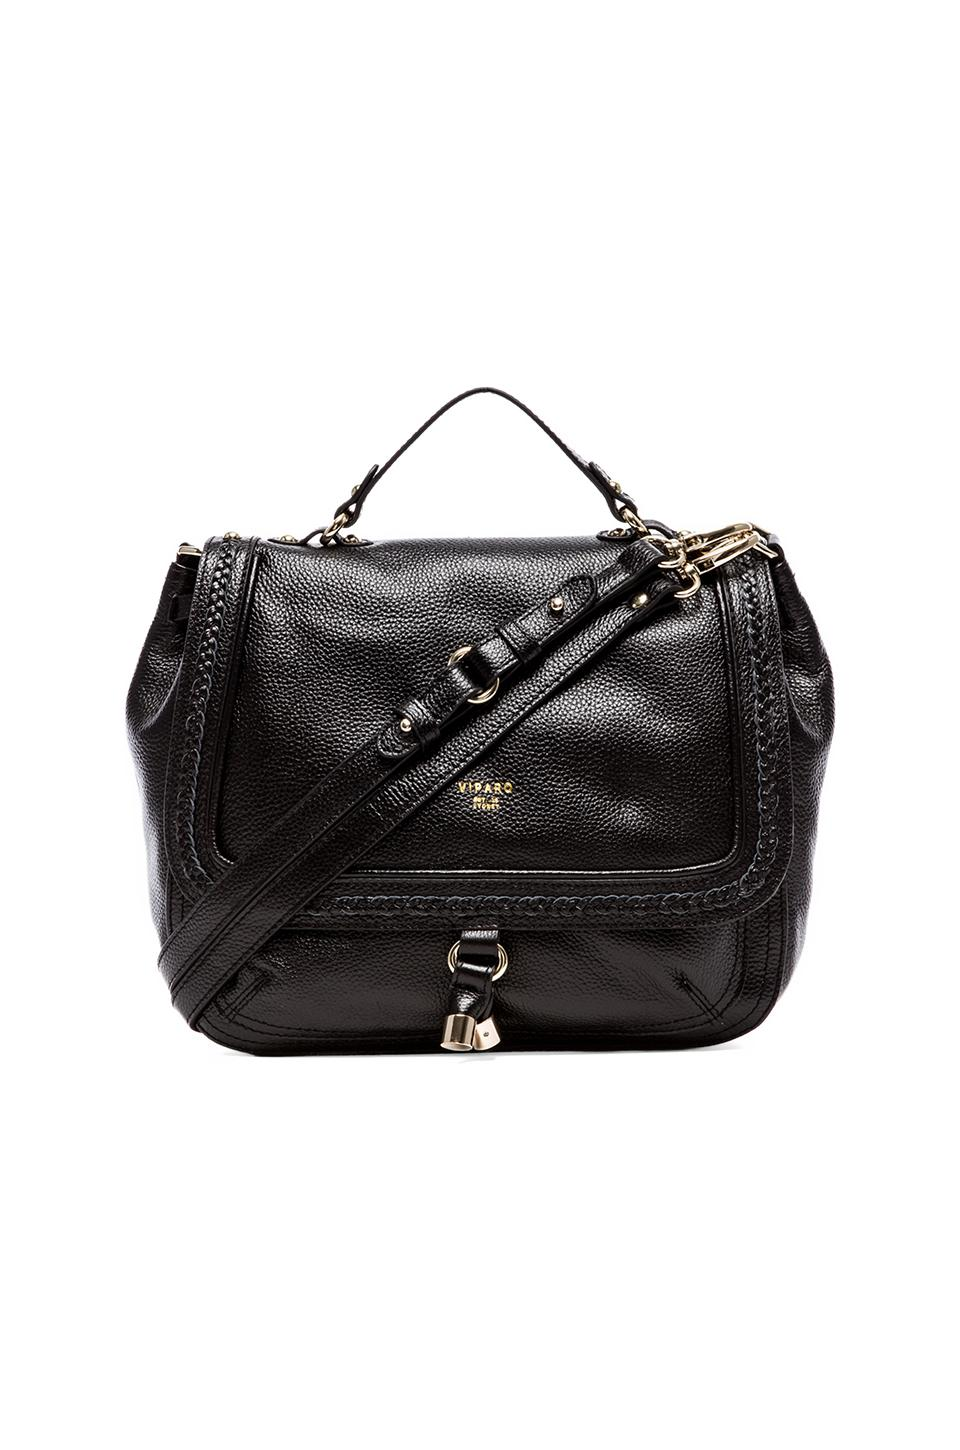 Viparo Jacinta Leather Double Strap Bag in Black